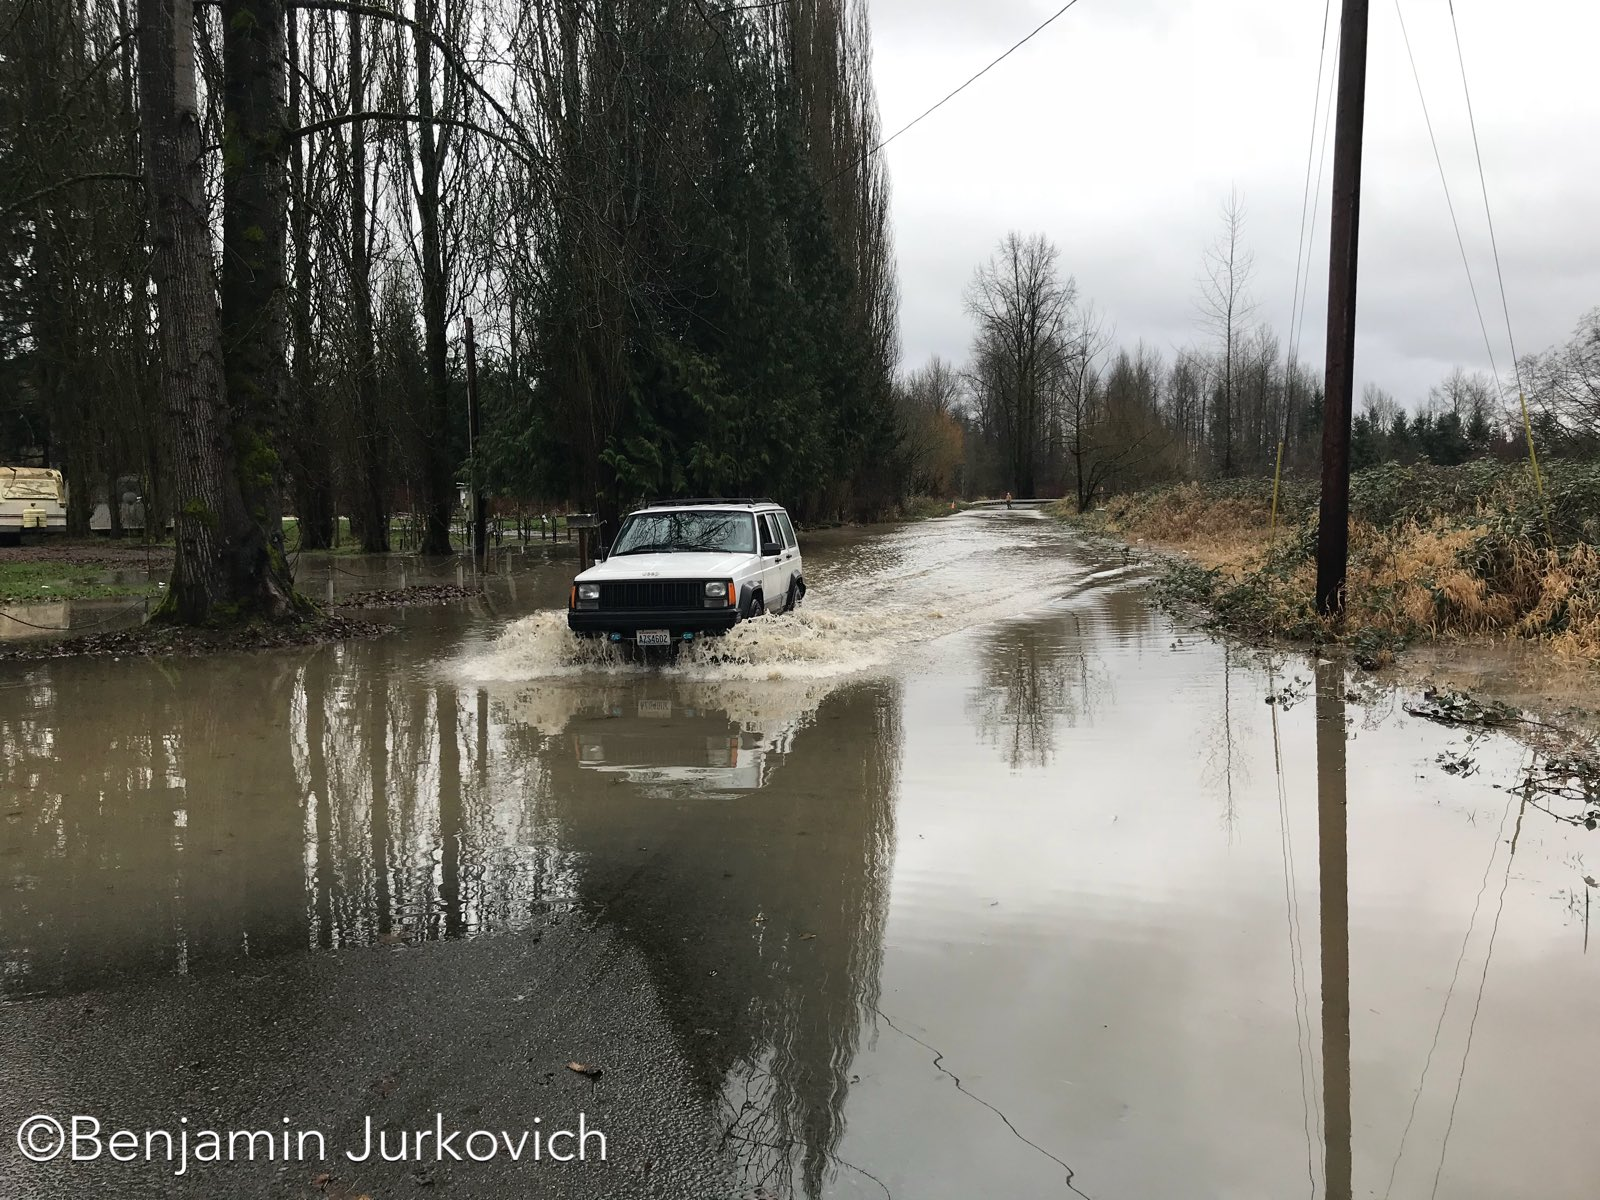 Flooding on the Pilchuck River near Lake Stevens (Photo: Benjamin Jurkovich)